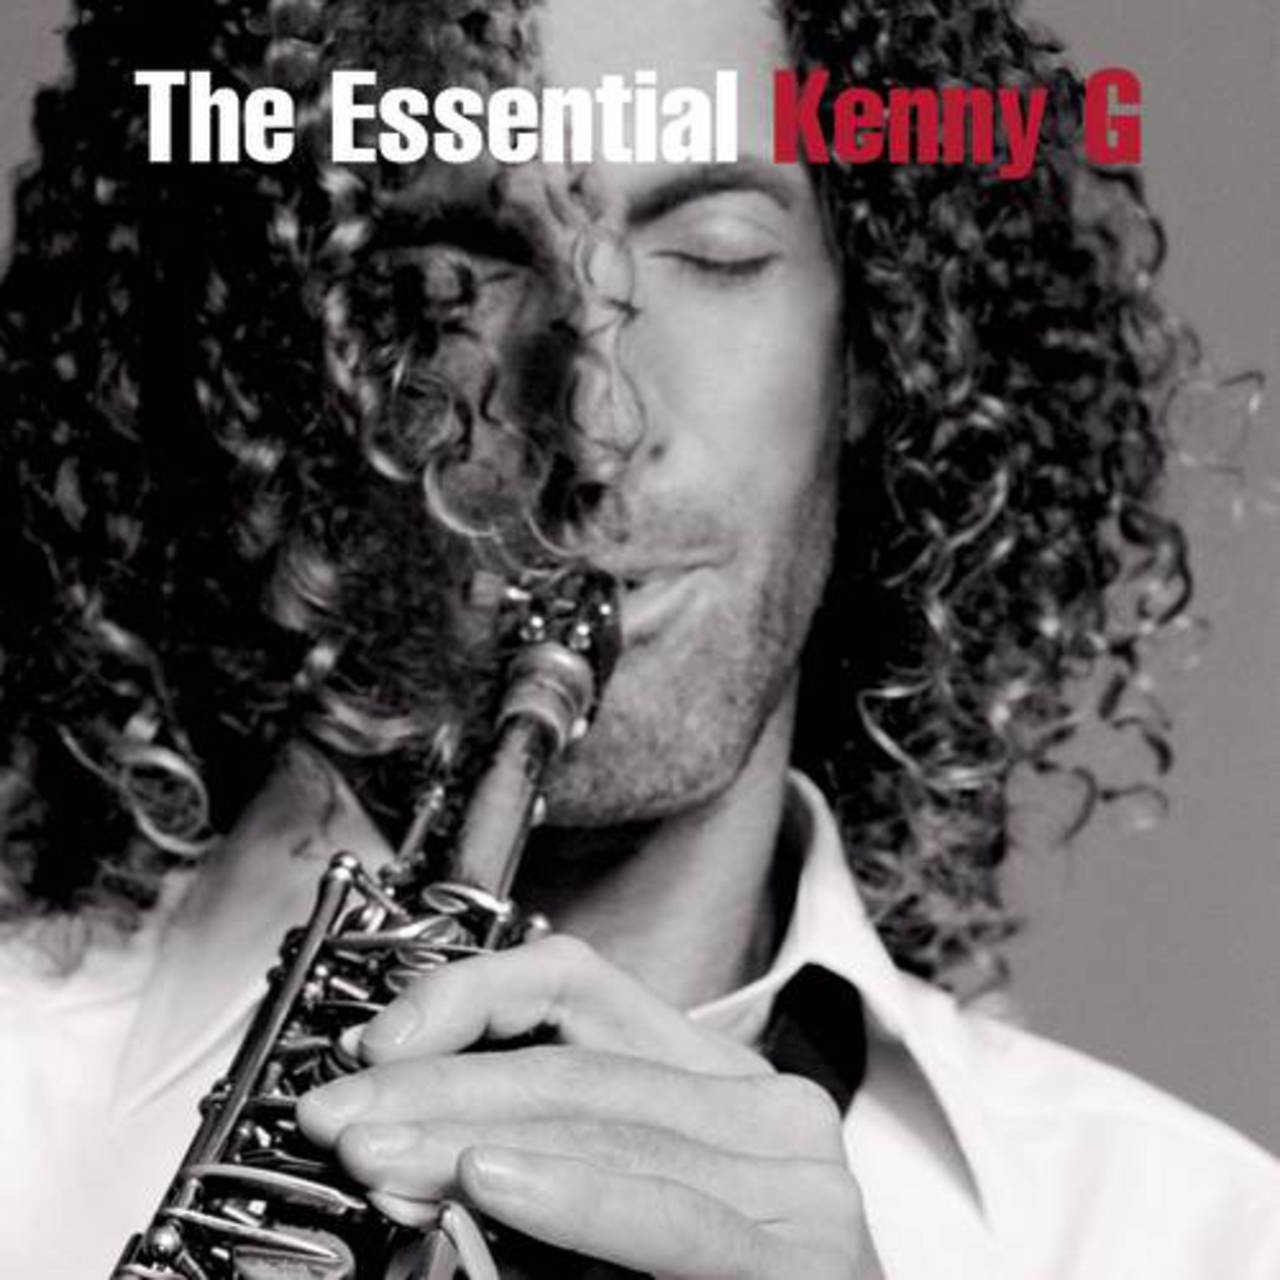 Tidal Listen To The Essential Kenny G On Tidal